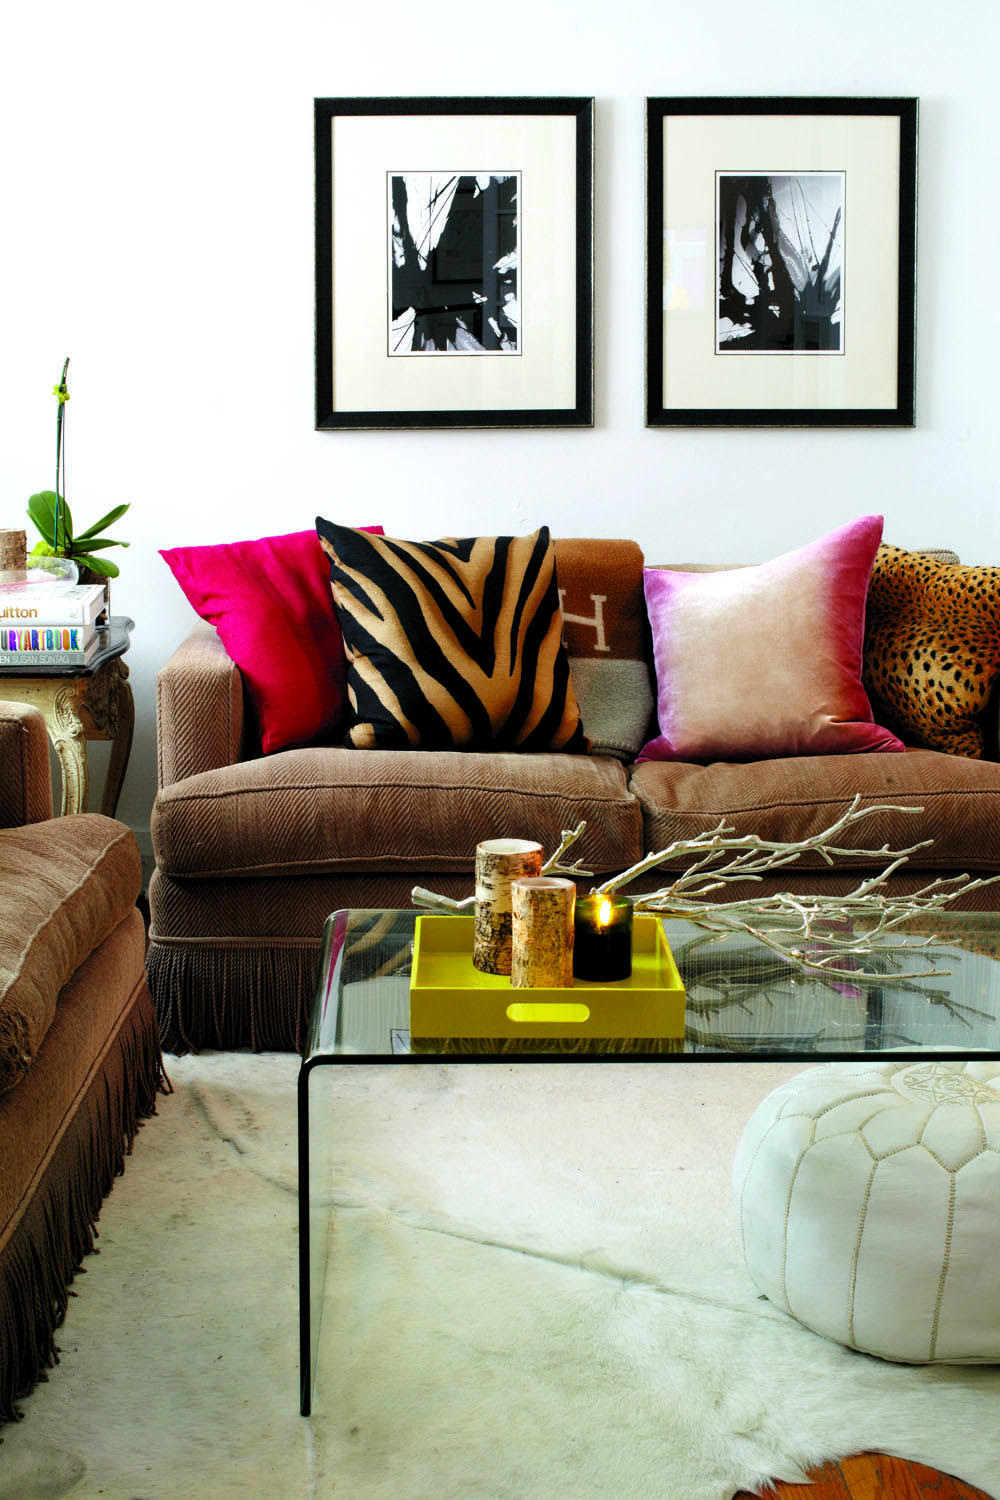 How to decorate a small living space - Chatelaine